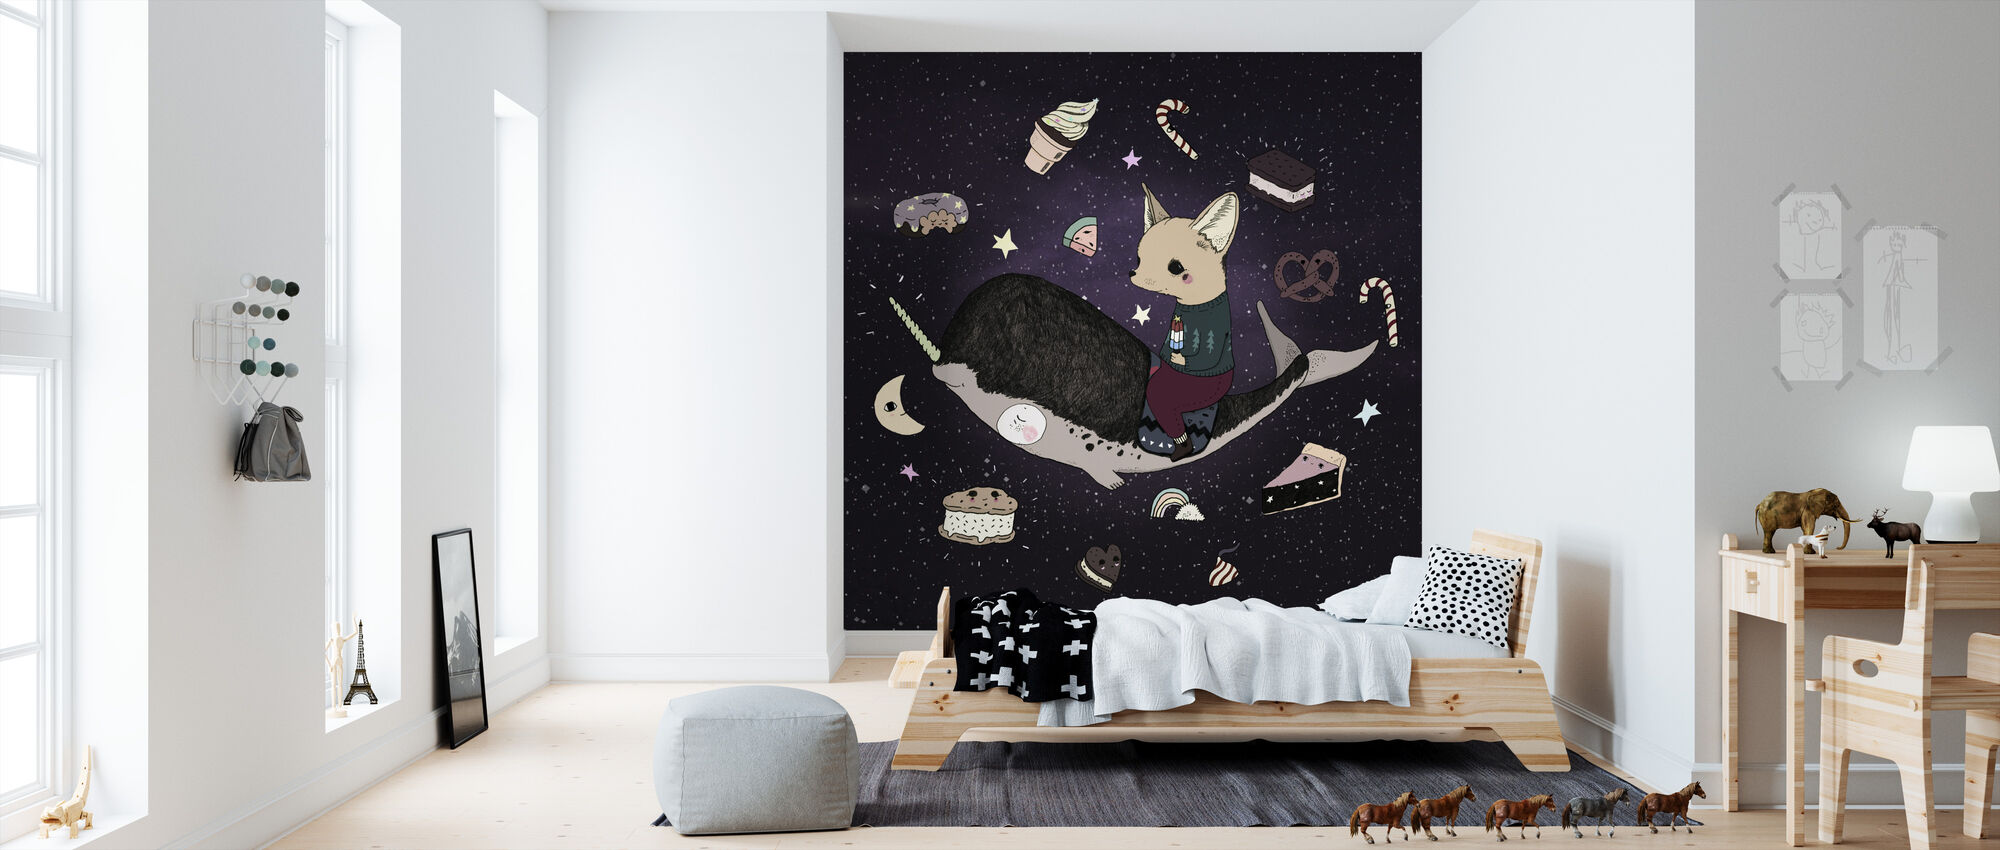 Candy Space - Wallpaper - Kids Room